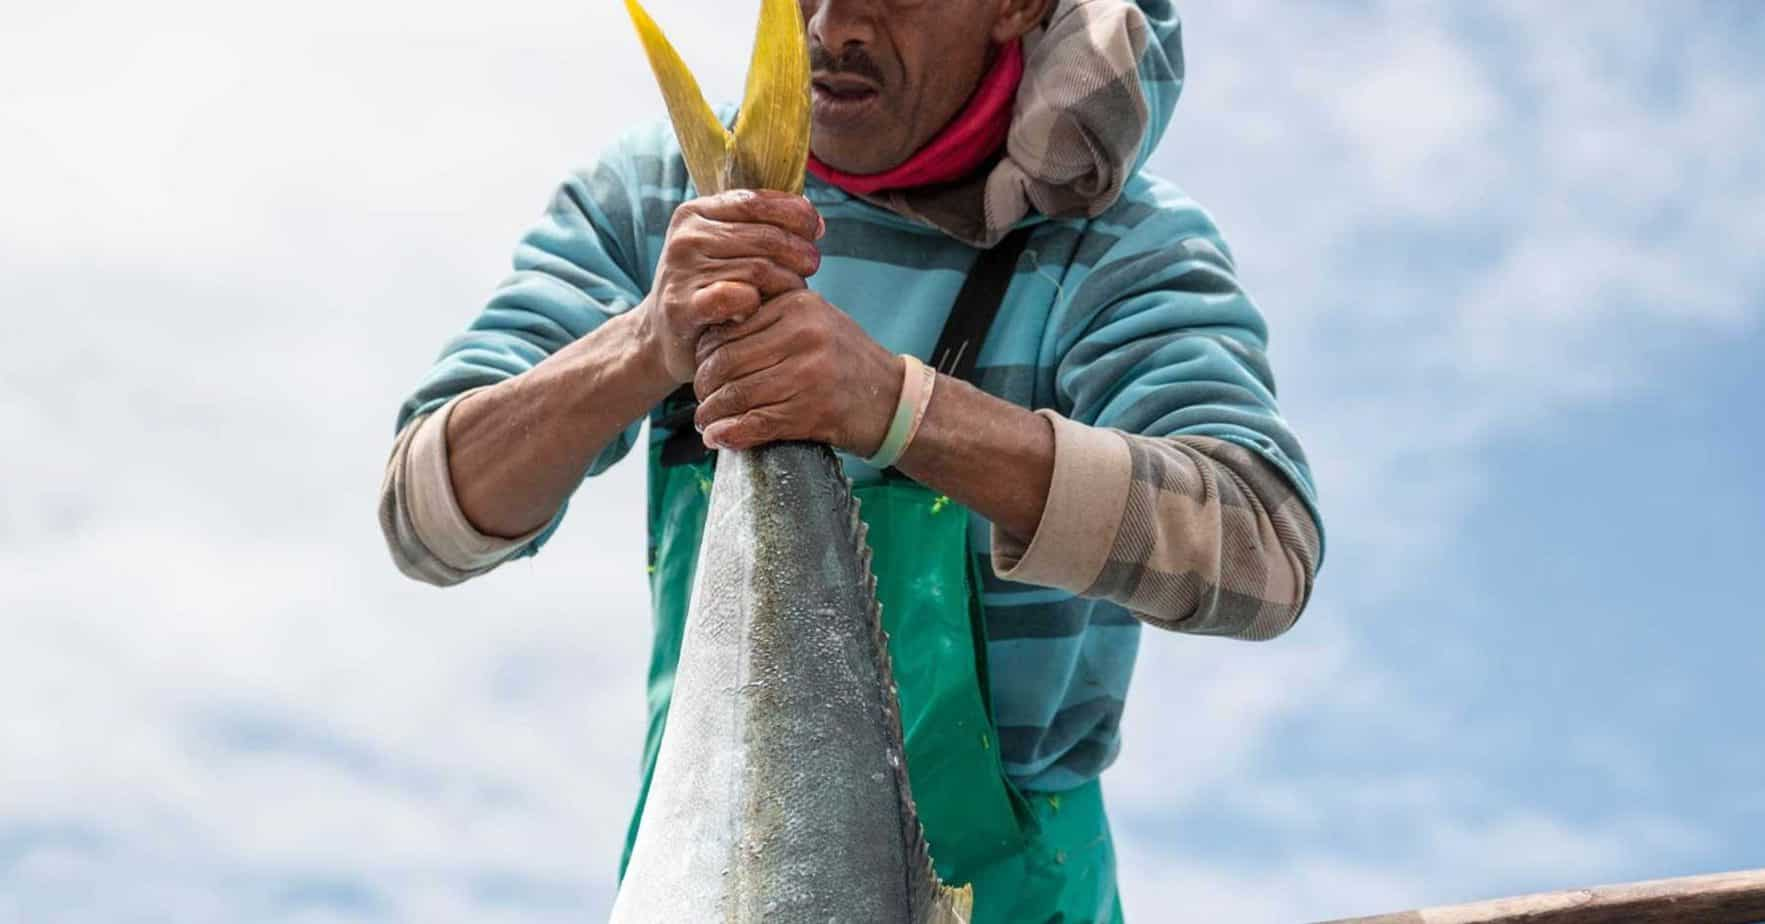 In many ways, South Africans have become used to paying more for fish during the Easter long weekend. He explains that at the harbour, when the boats come in, fishermen operate like auctioneers. Photo: ABALOBI/Facebook